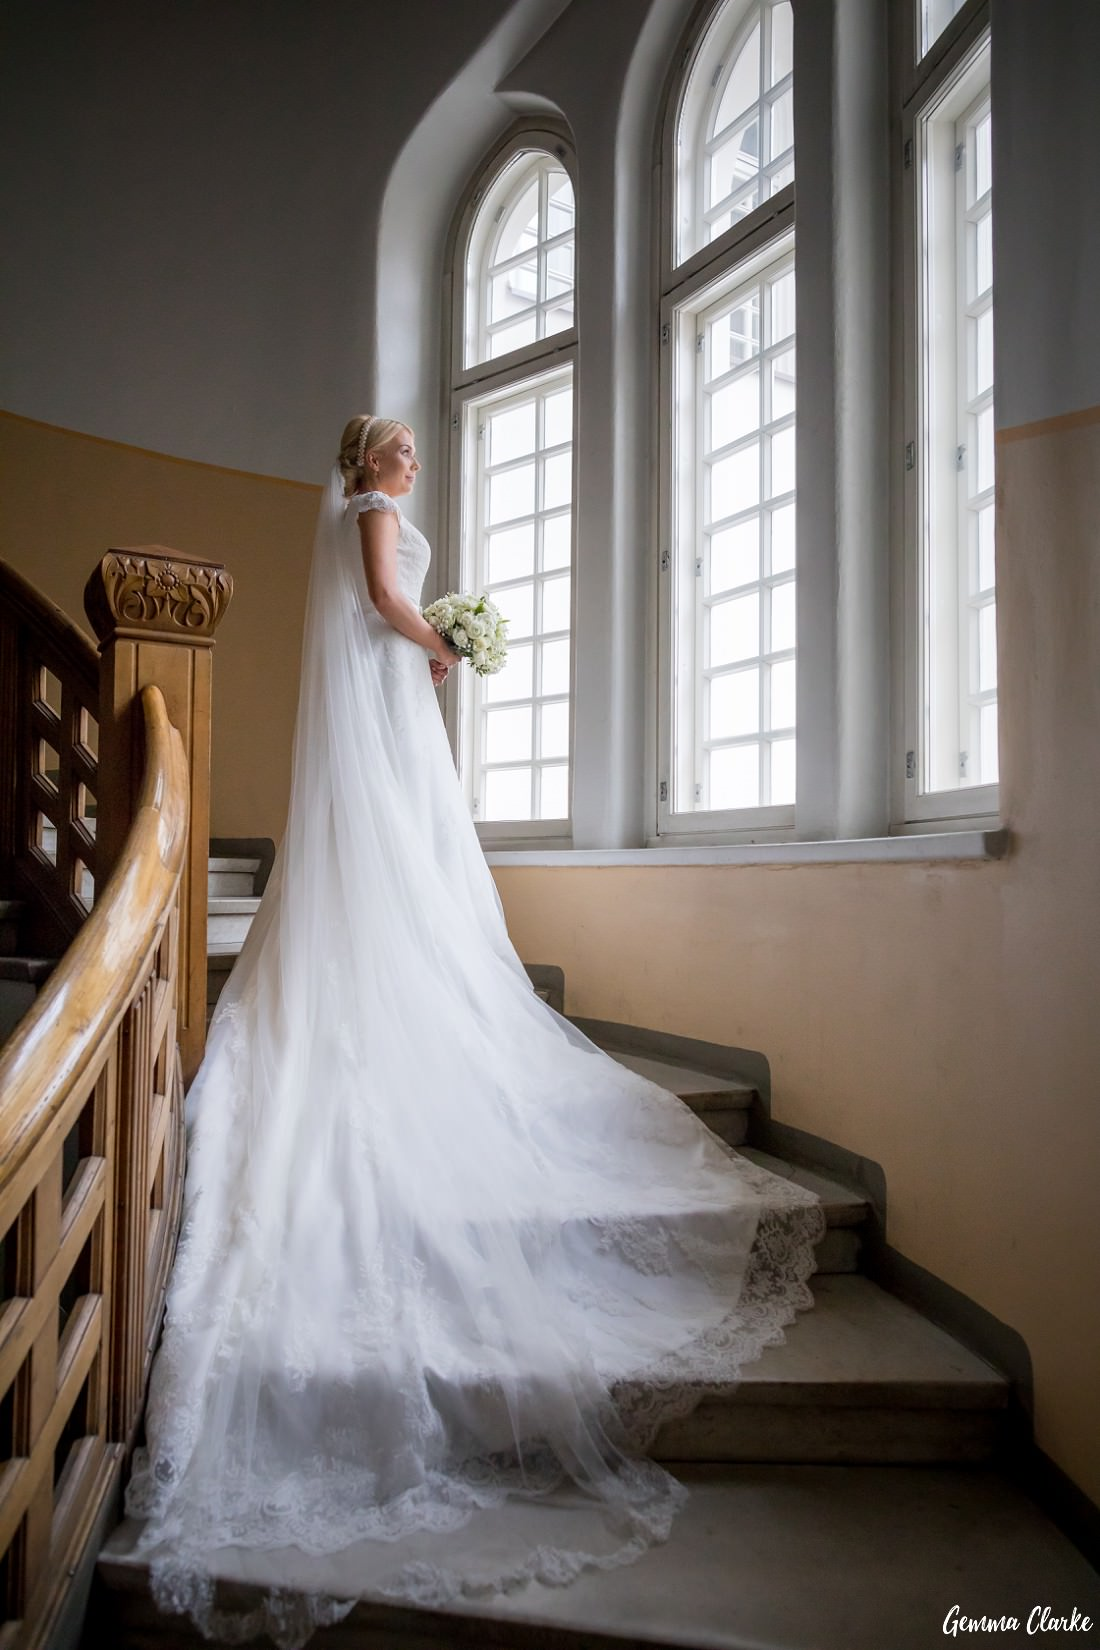 Bride standing on a stairwell with long veil and train falling down the stairs like a waterfall and looking out the large oval window at this Tampere Wedding